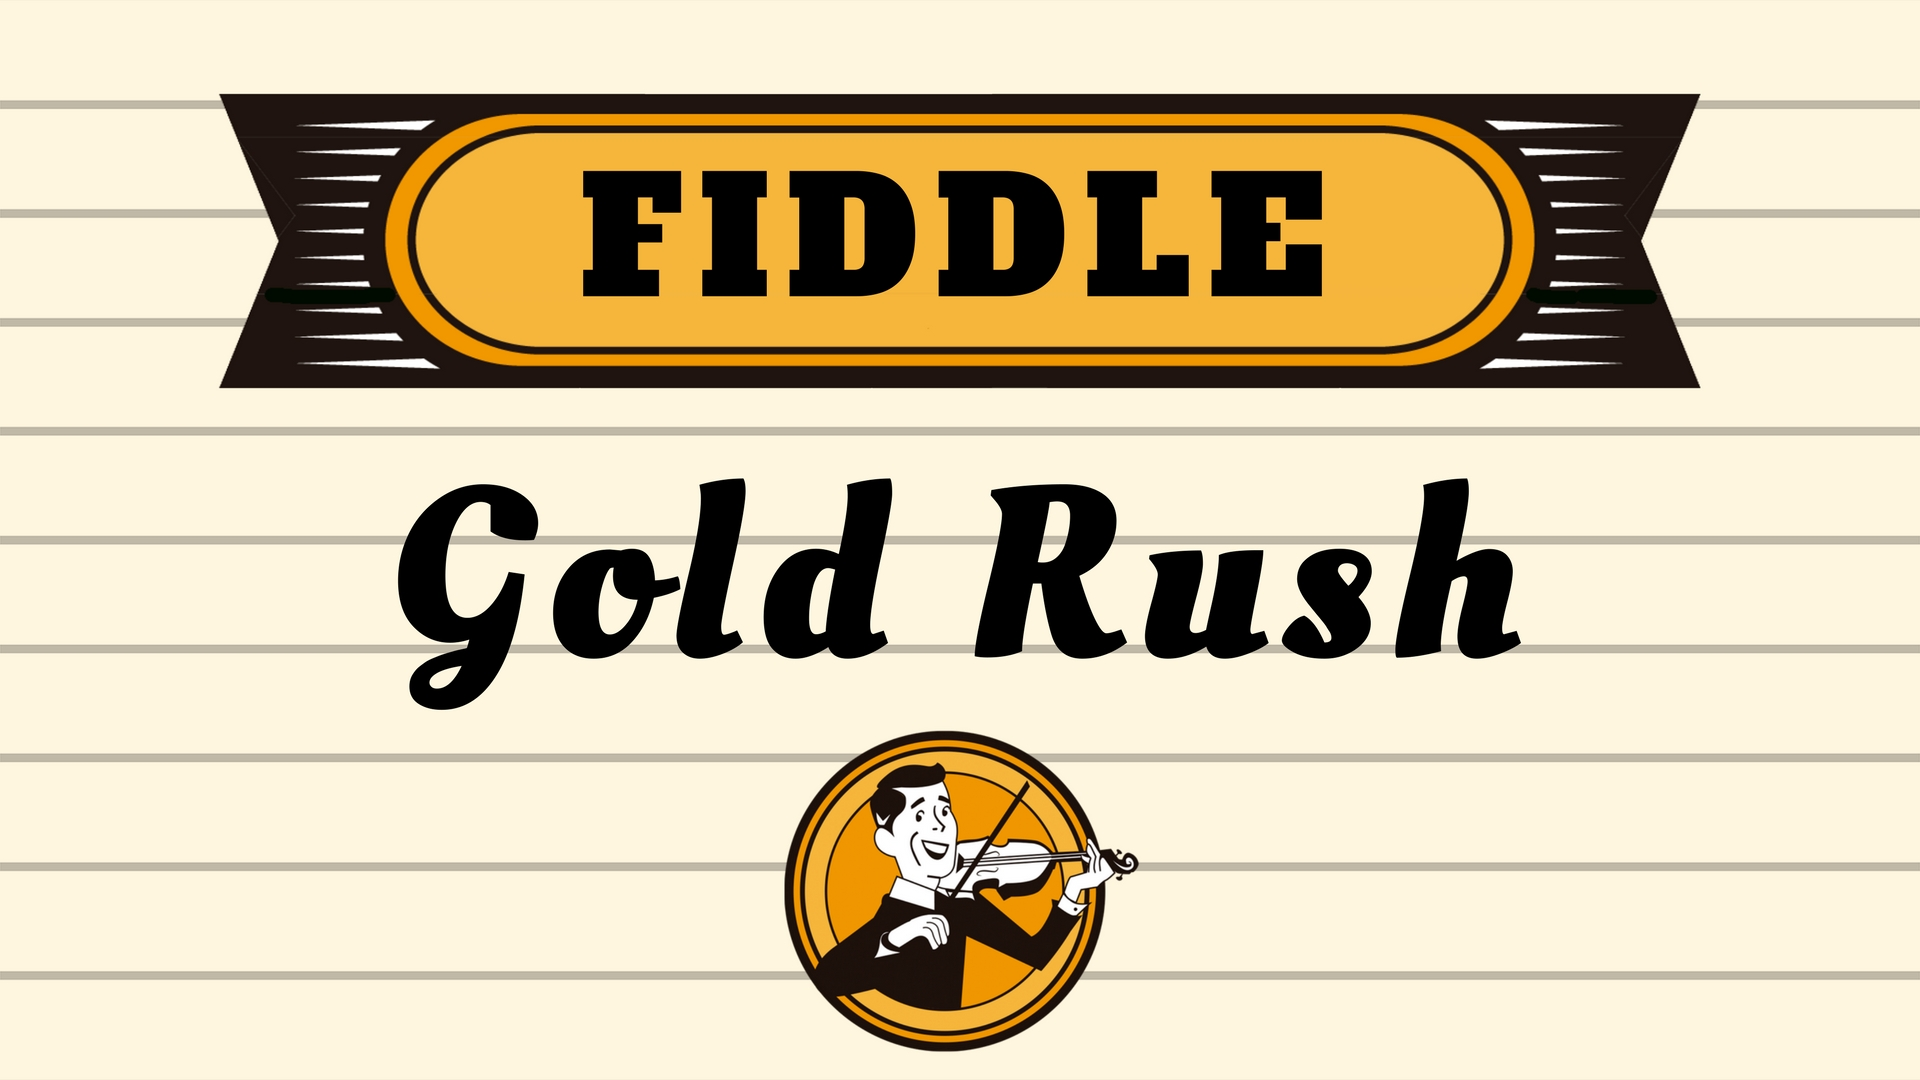 Fiddle Gold Rush